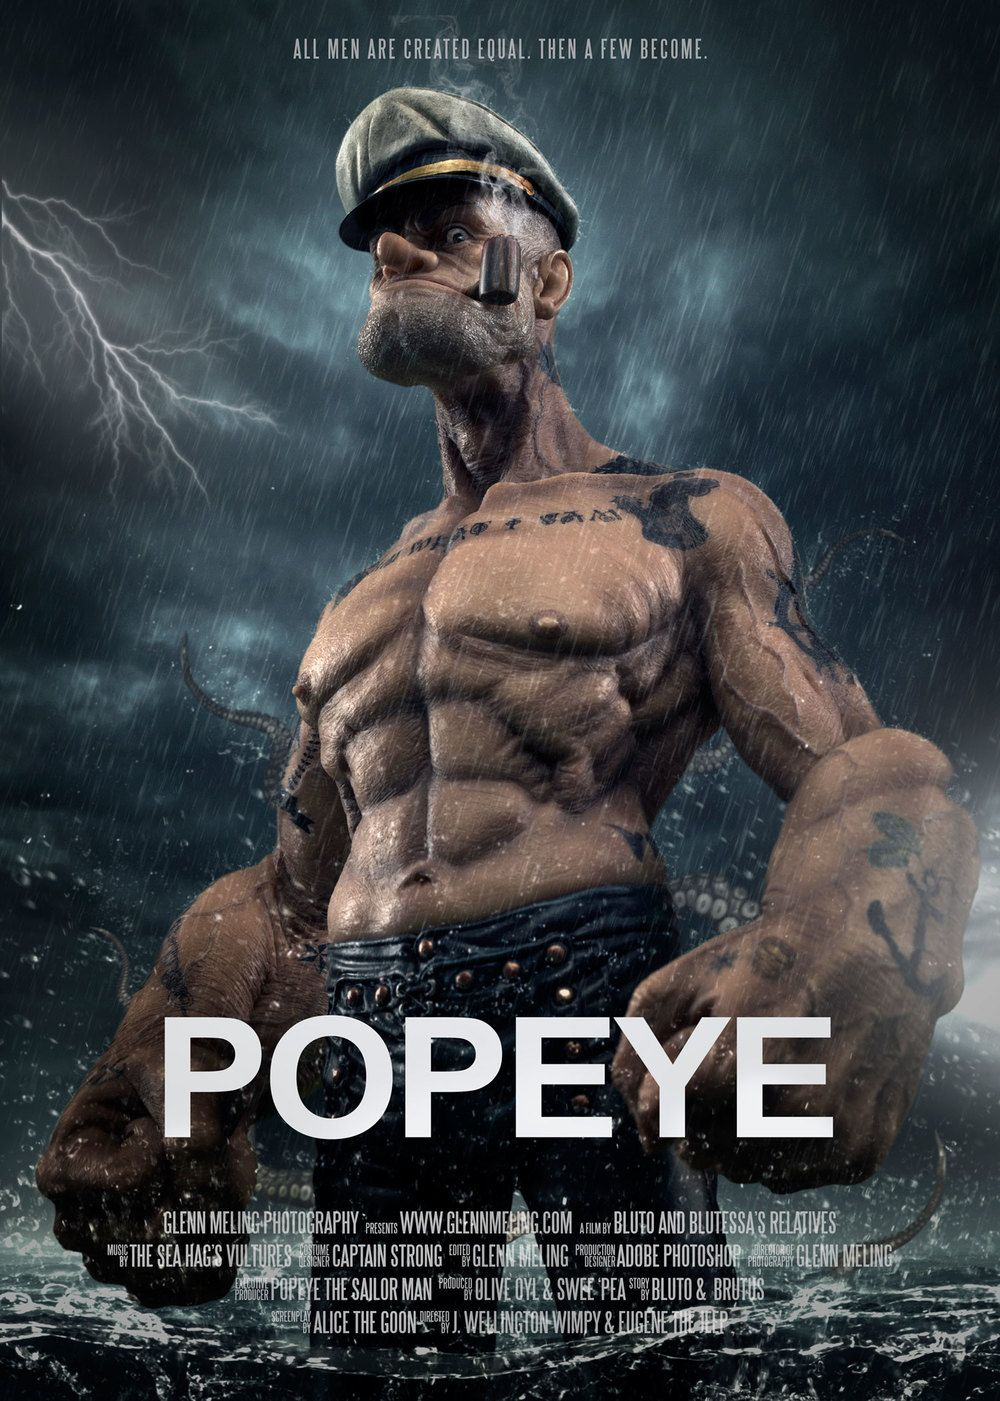 Popeye Returns In A Cg Feature Film Featuring Many Of The